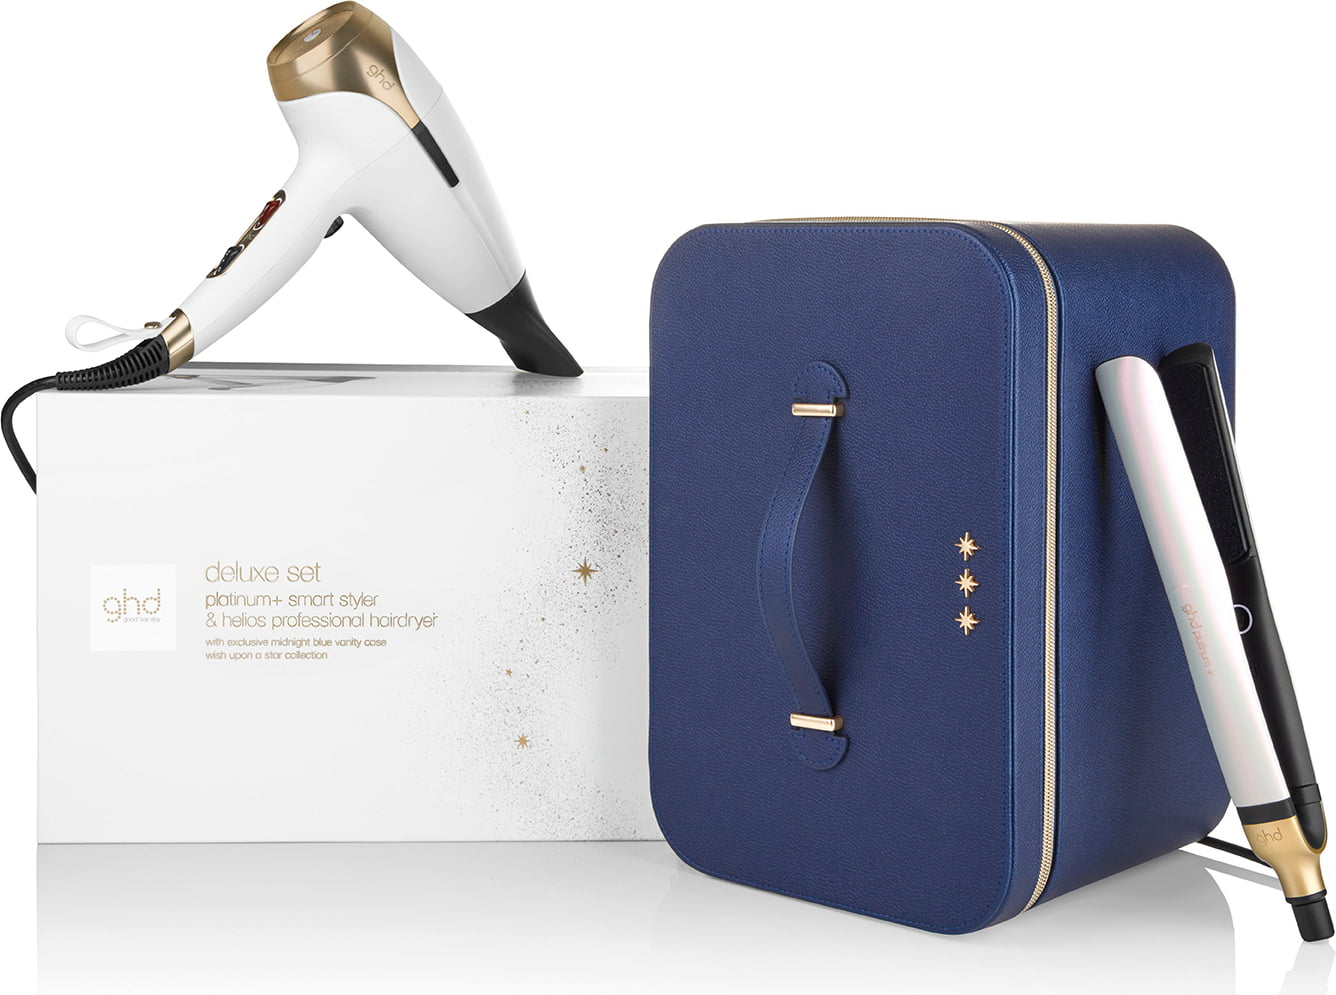 Ghd Wish Upon A Star Deluxe Set 1 Set Labelhair Europe